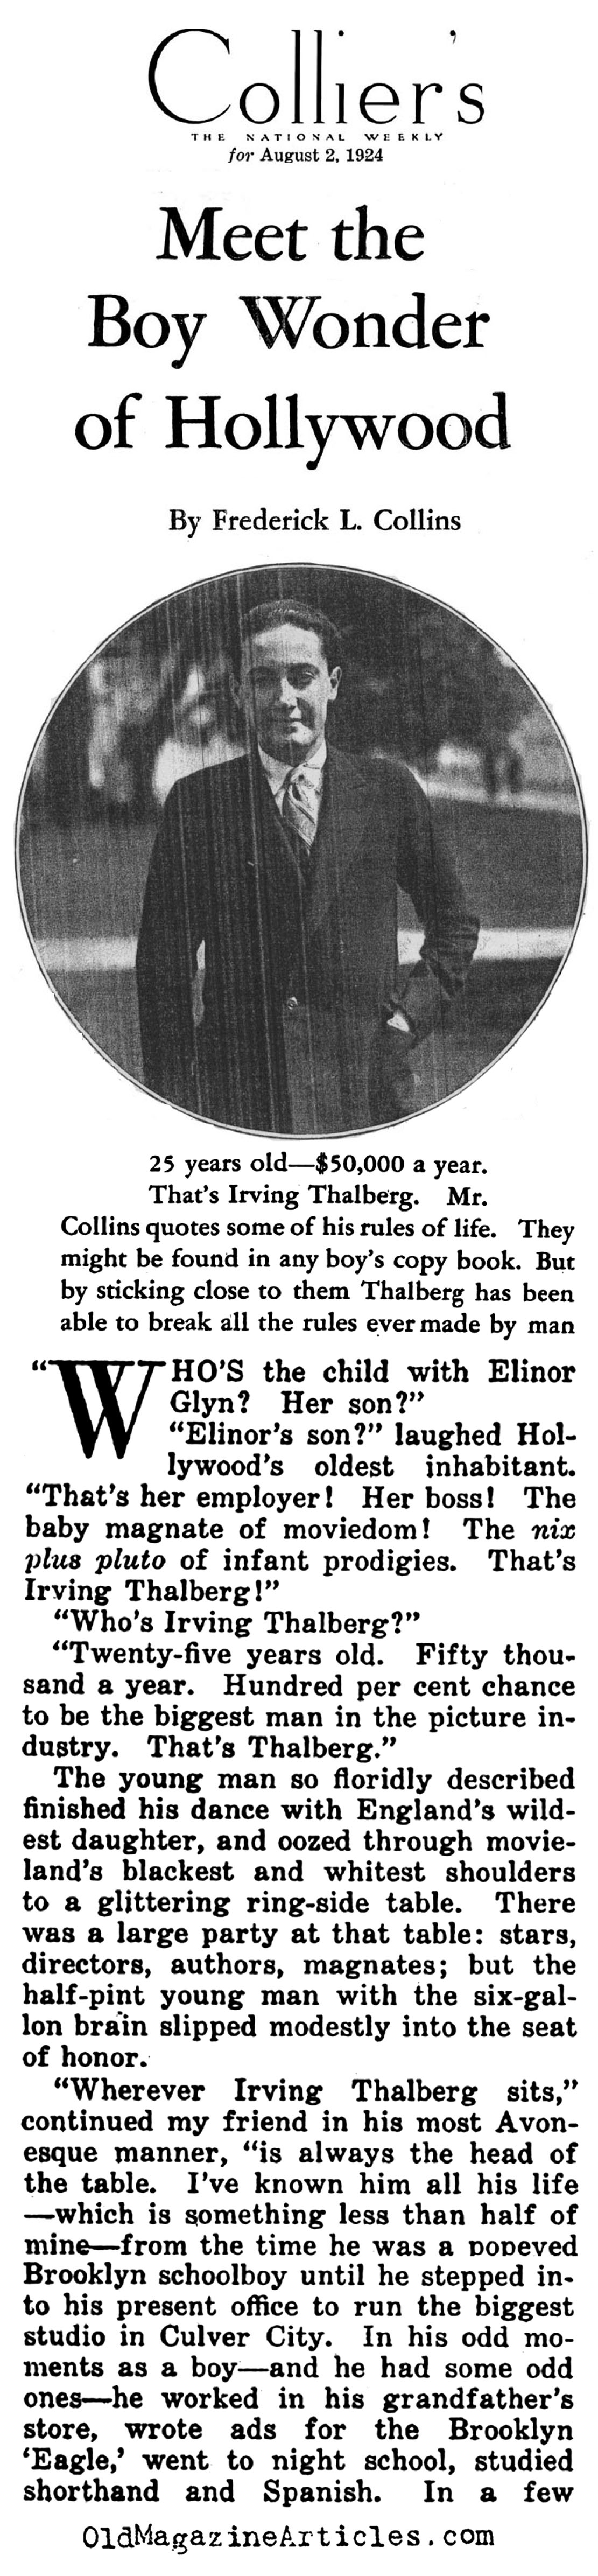 Irving Thalberg: Hollywood's Boy Wonder (Collier's Magazine, 1924)